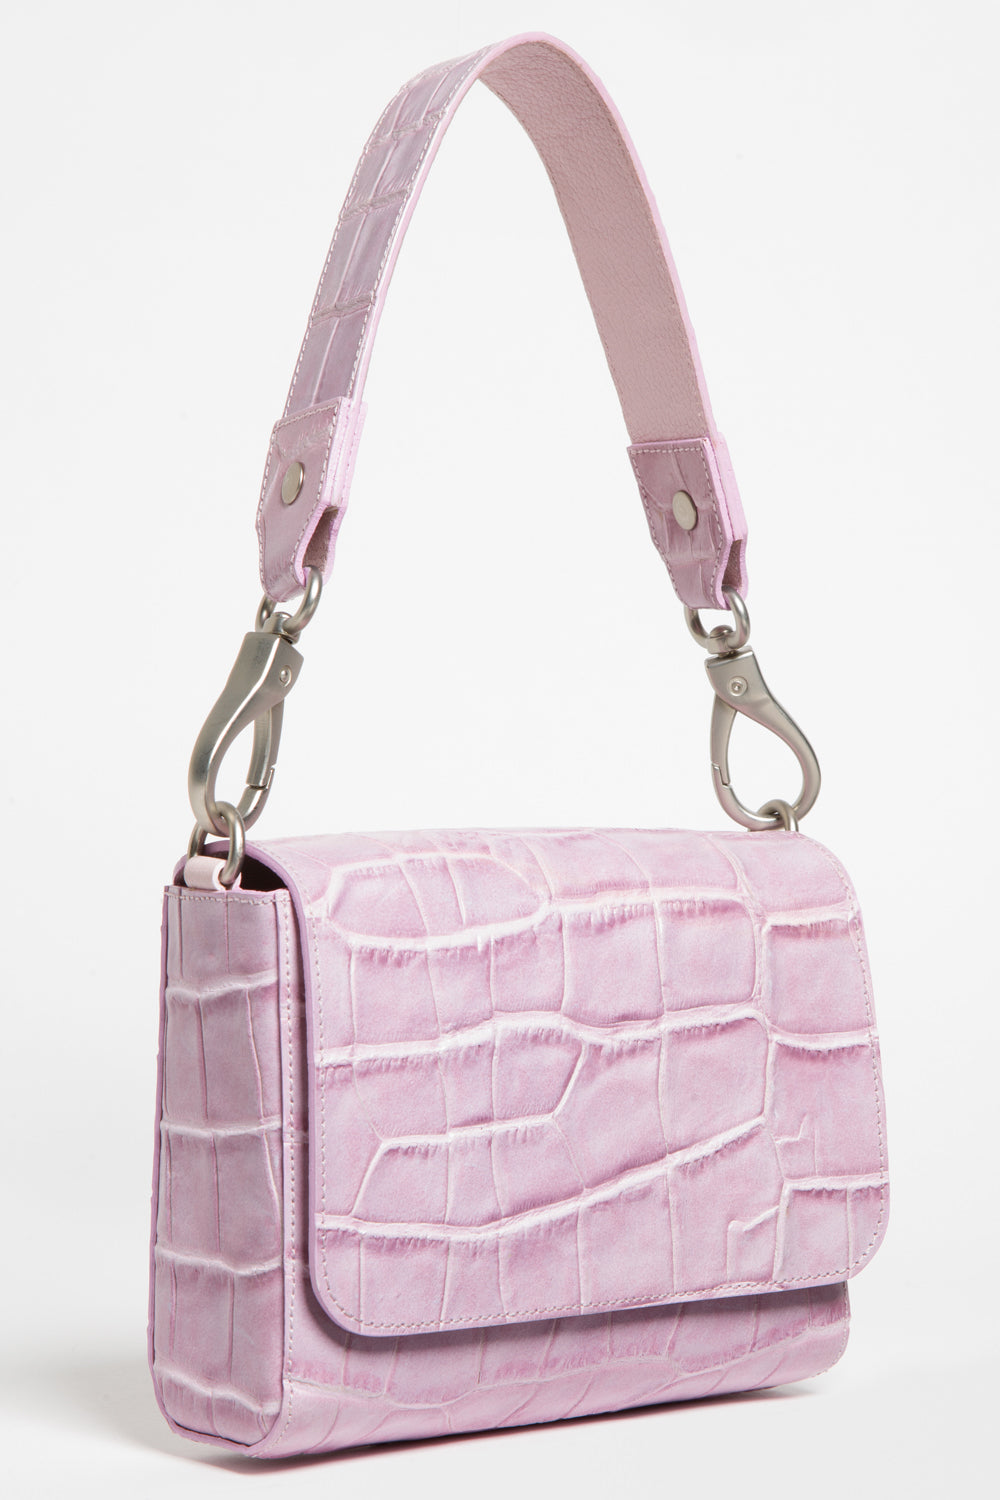 Sweet Lilac Gema Bag | Shoulder Style | Mel Boteri Designer Handbags